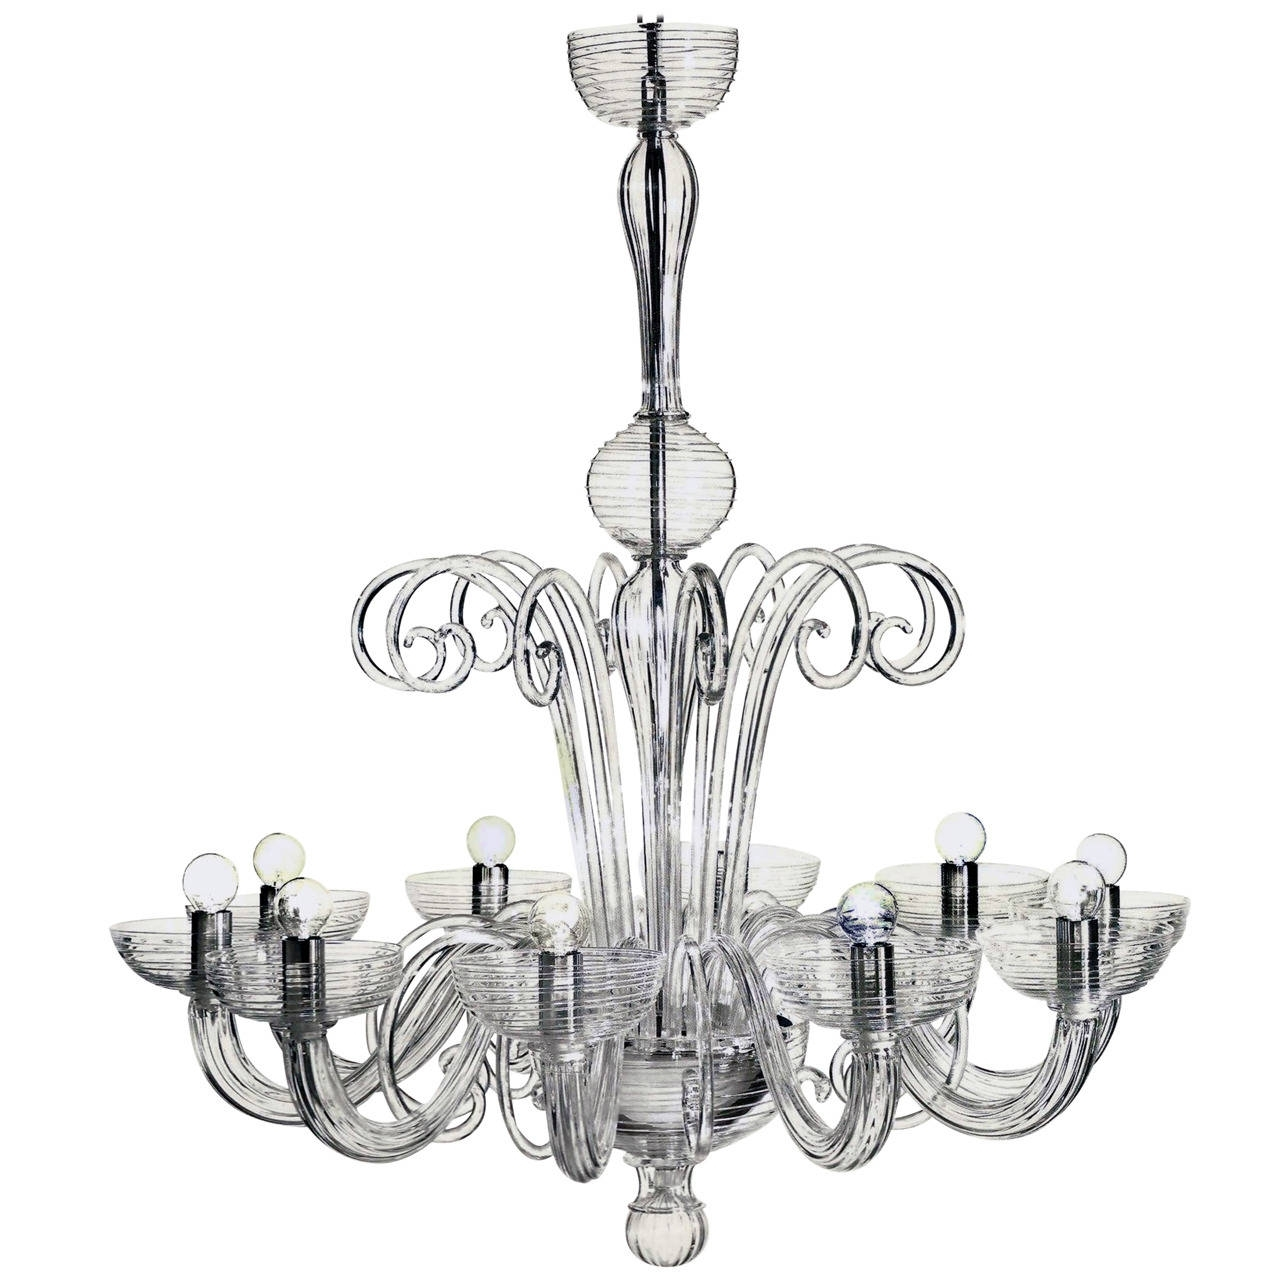 Favorite Two Italian Mid Century Style Clear Murano / Venetian Glass Ten Arm Pertaining To Italian Chandeliers Style (View 7 of 15)